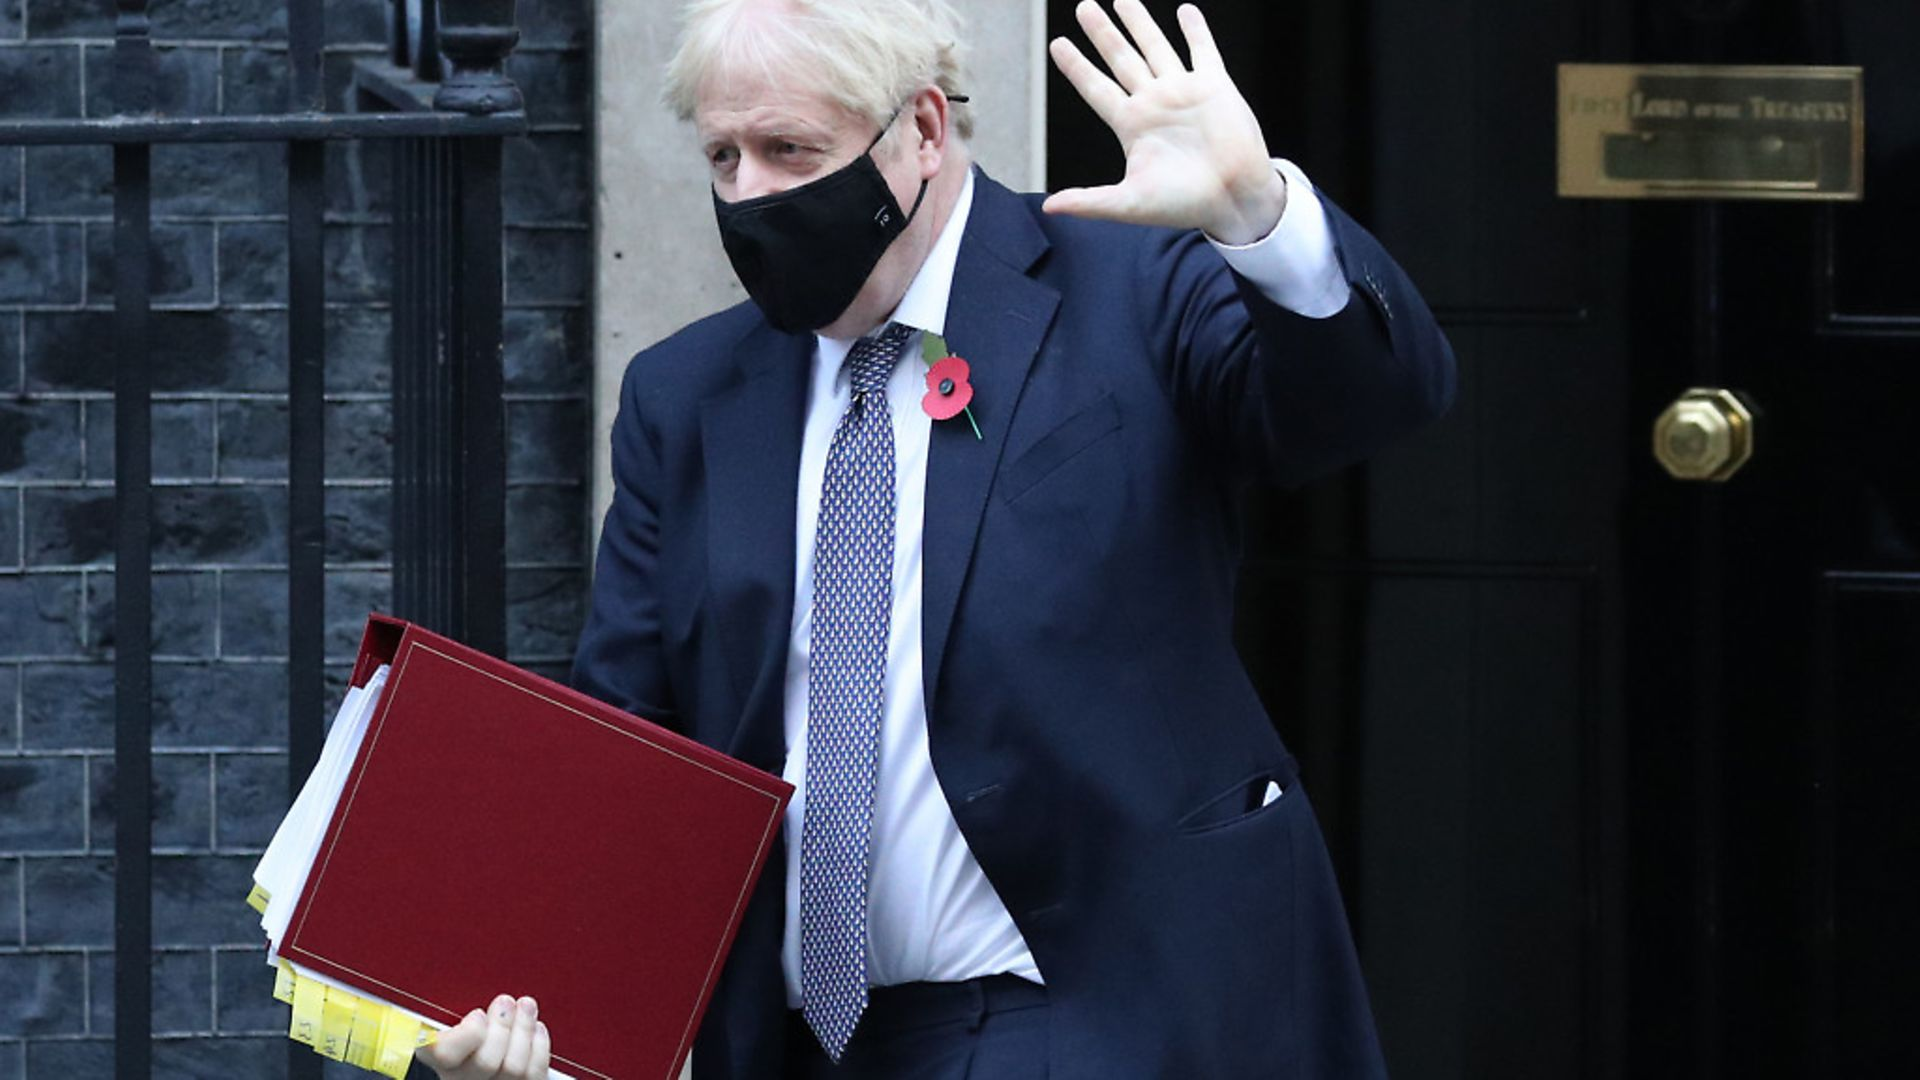 Prime Minister Boris Johnson leaves 10 Downing Street to go to the Houses of Parliament, London. Picture: Jonathan Brady/PA Wire - Credit: PA